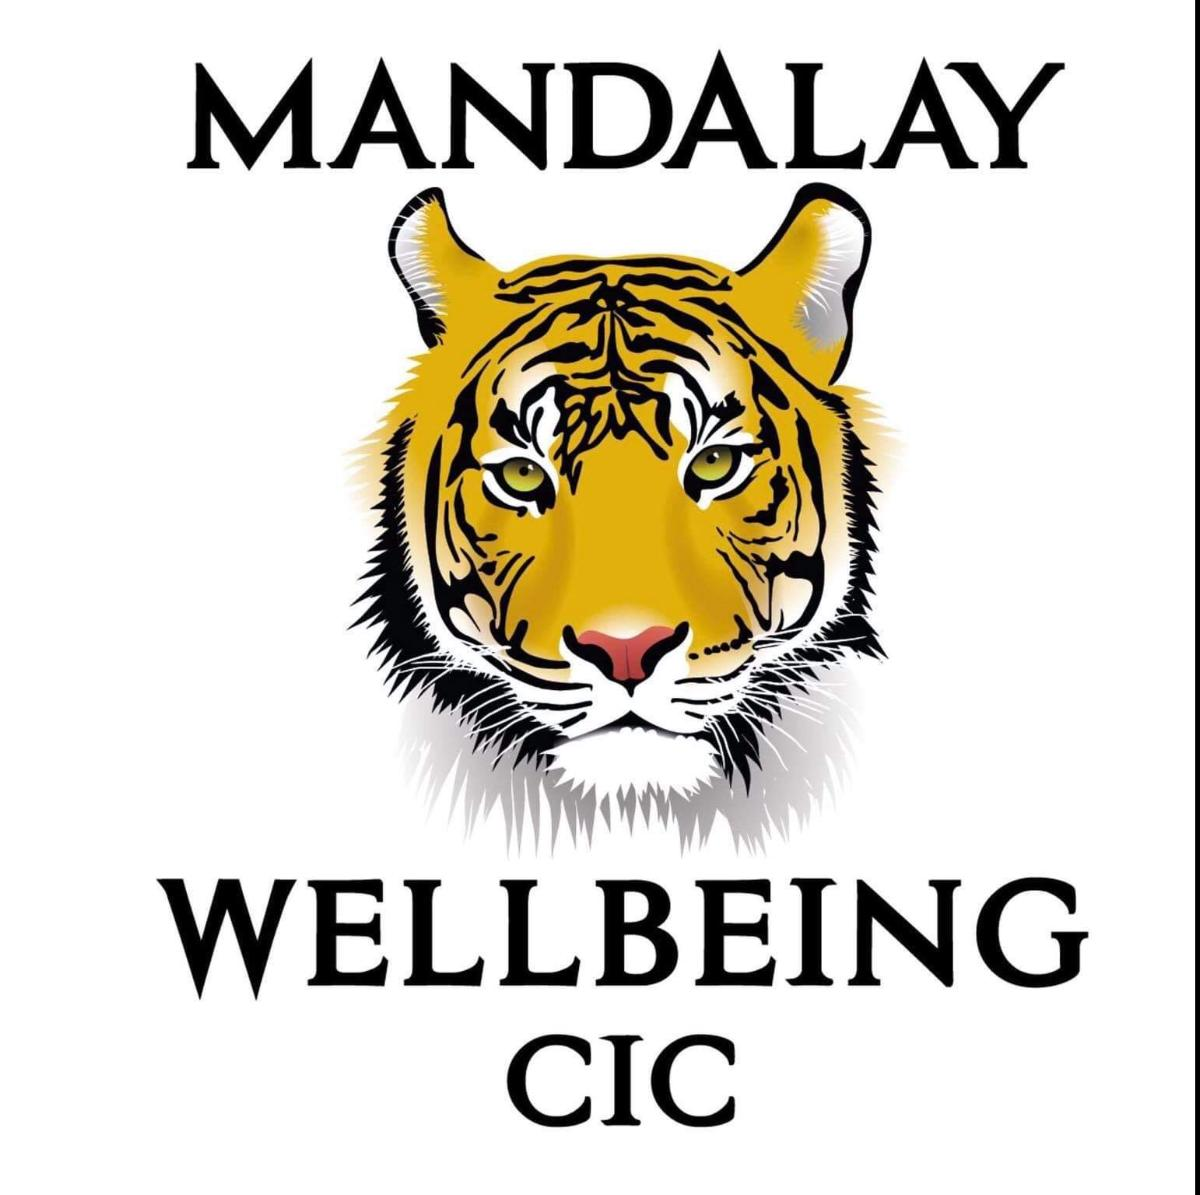 Mandalay Wellbeing CIC